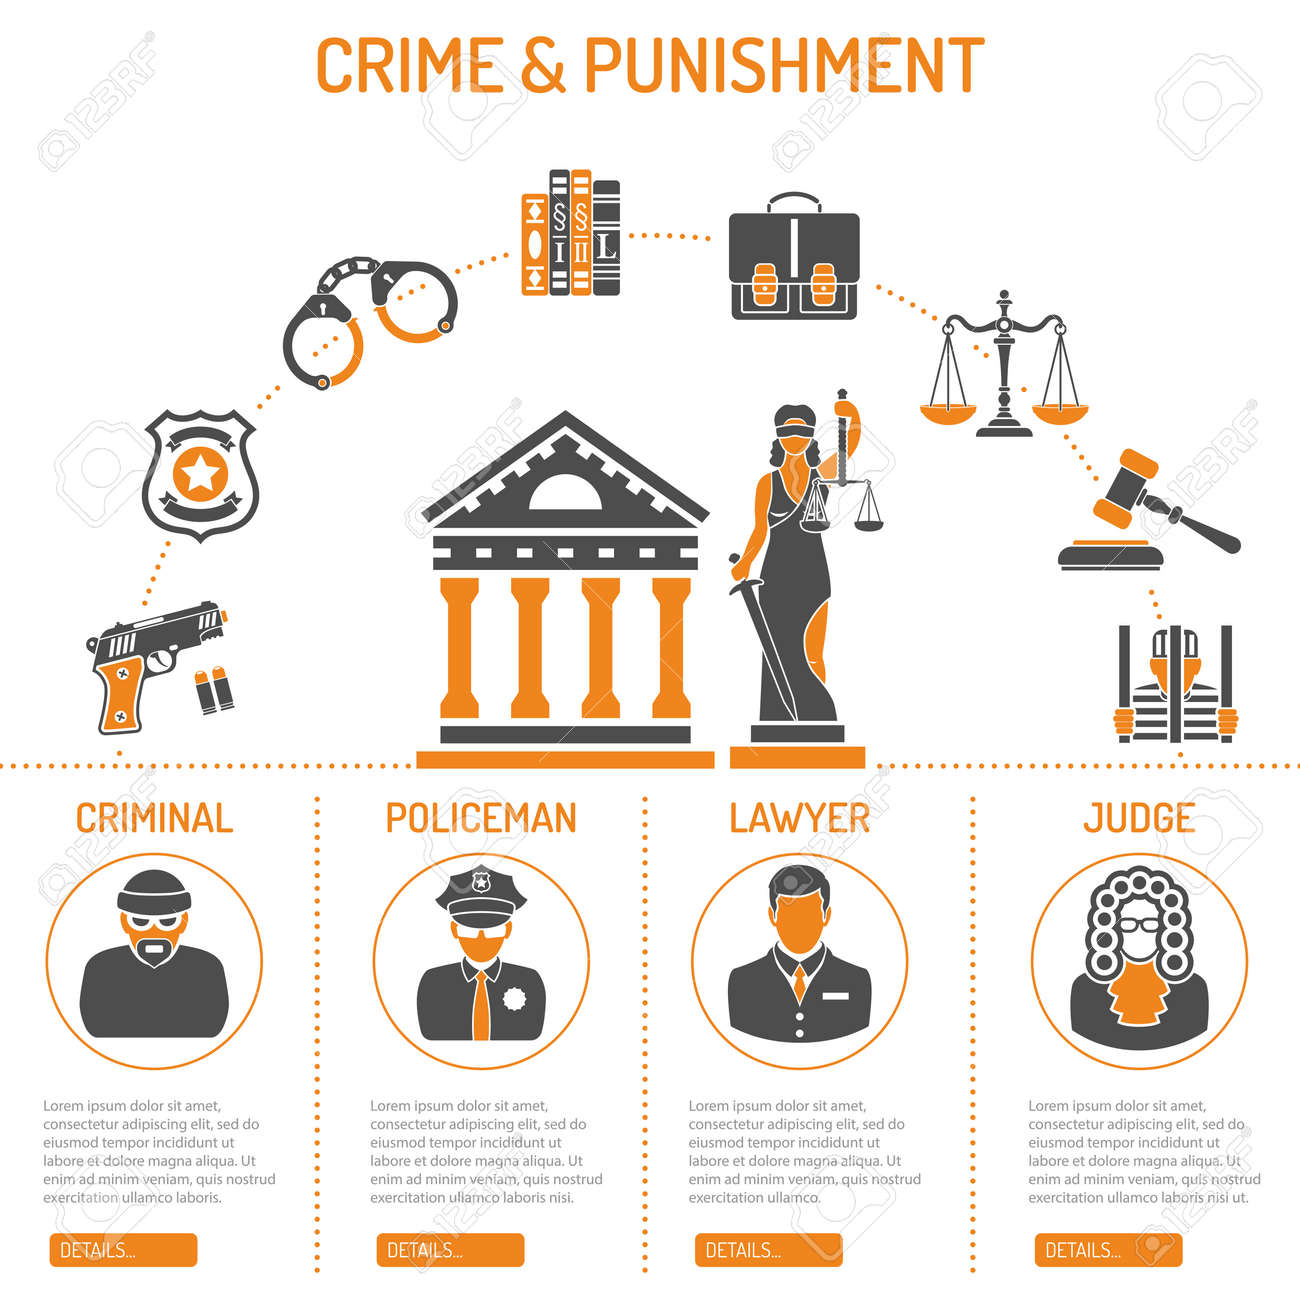 Crime and Punishment Vector Concept with Flat Icons for Flyer, Poster, Web Site, Advertising Like Thief, Policeman, Lawyer, Judge, Lady Justice and Court House. - 54418180